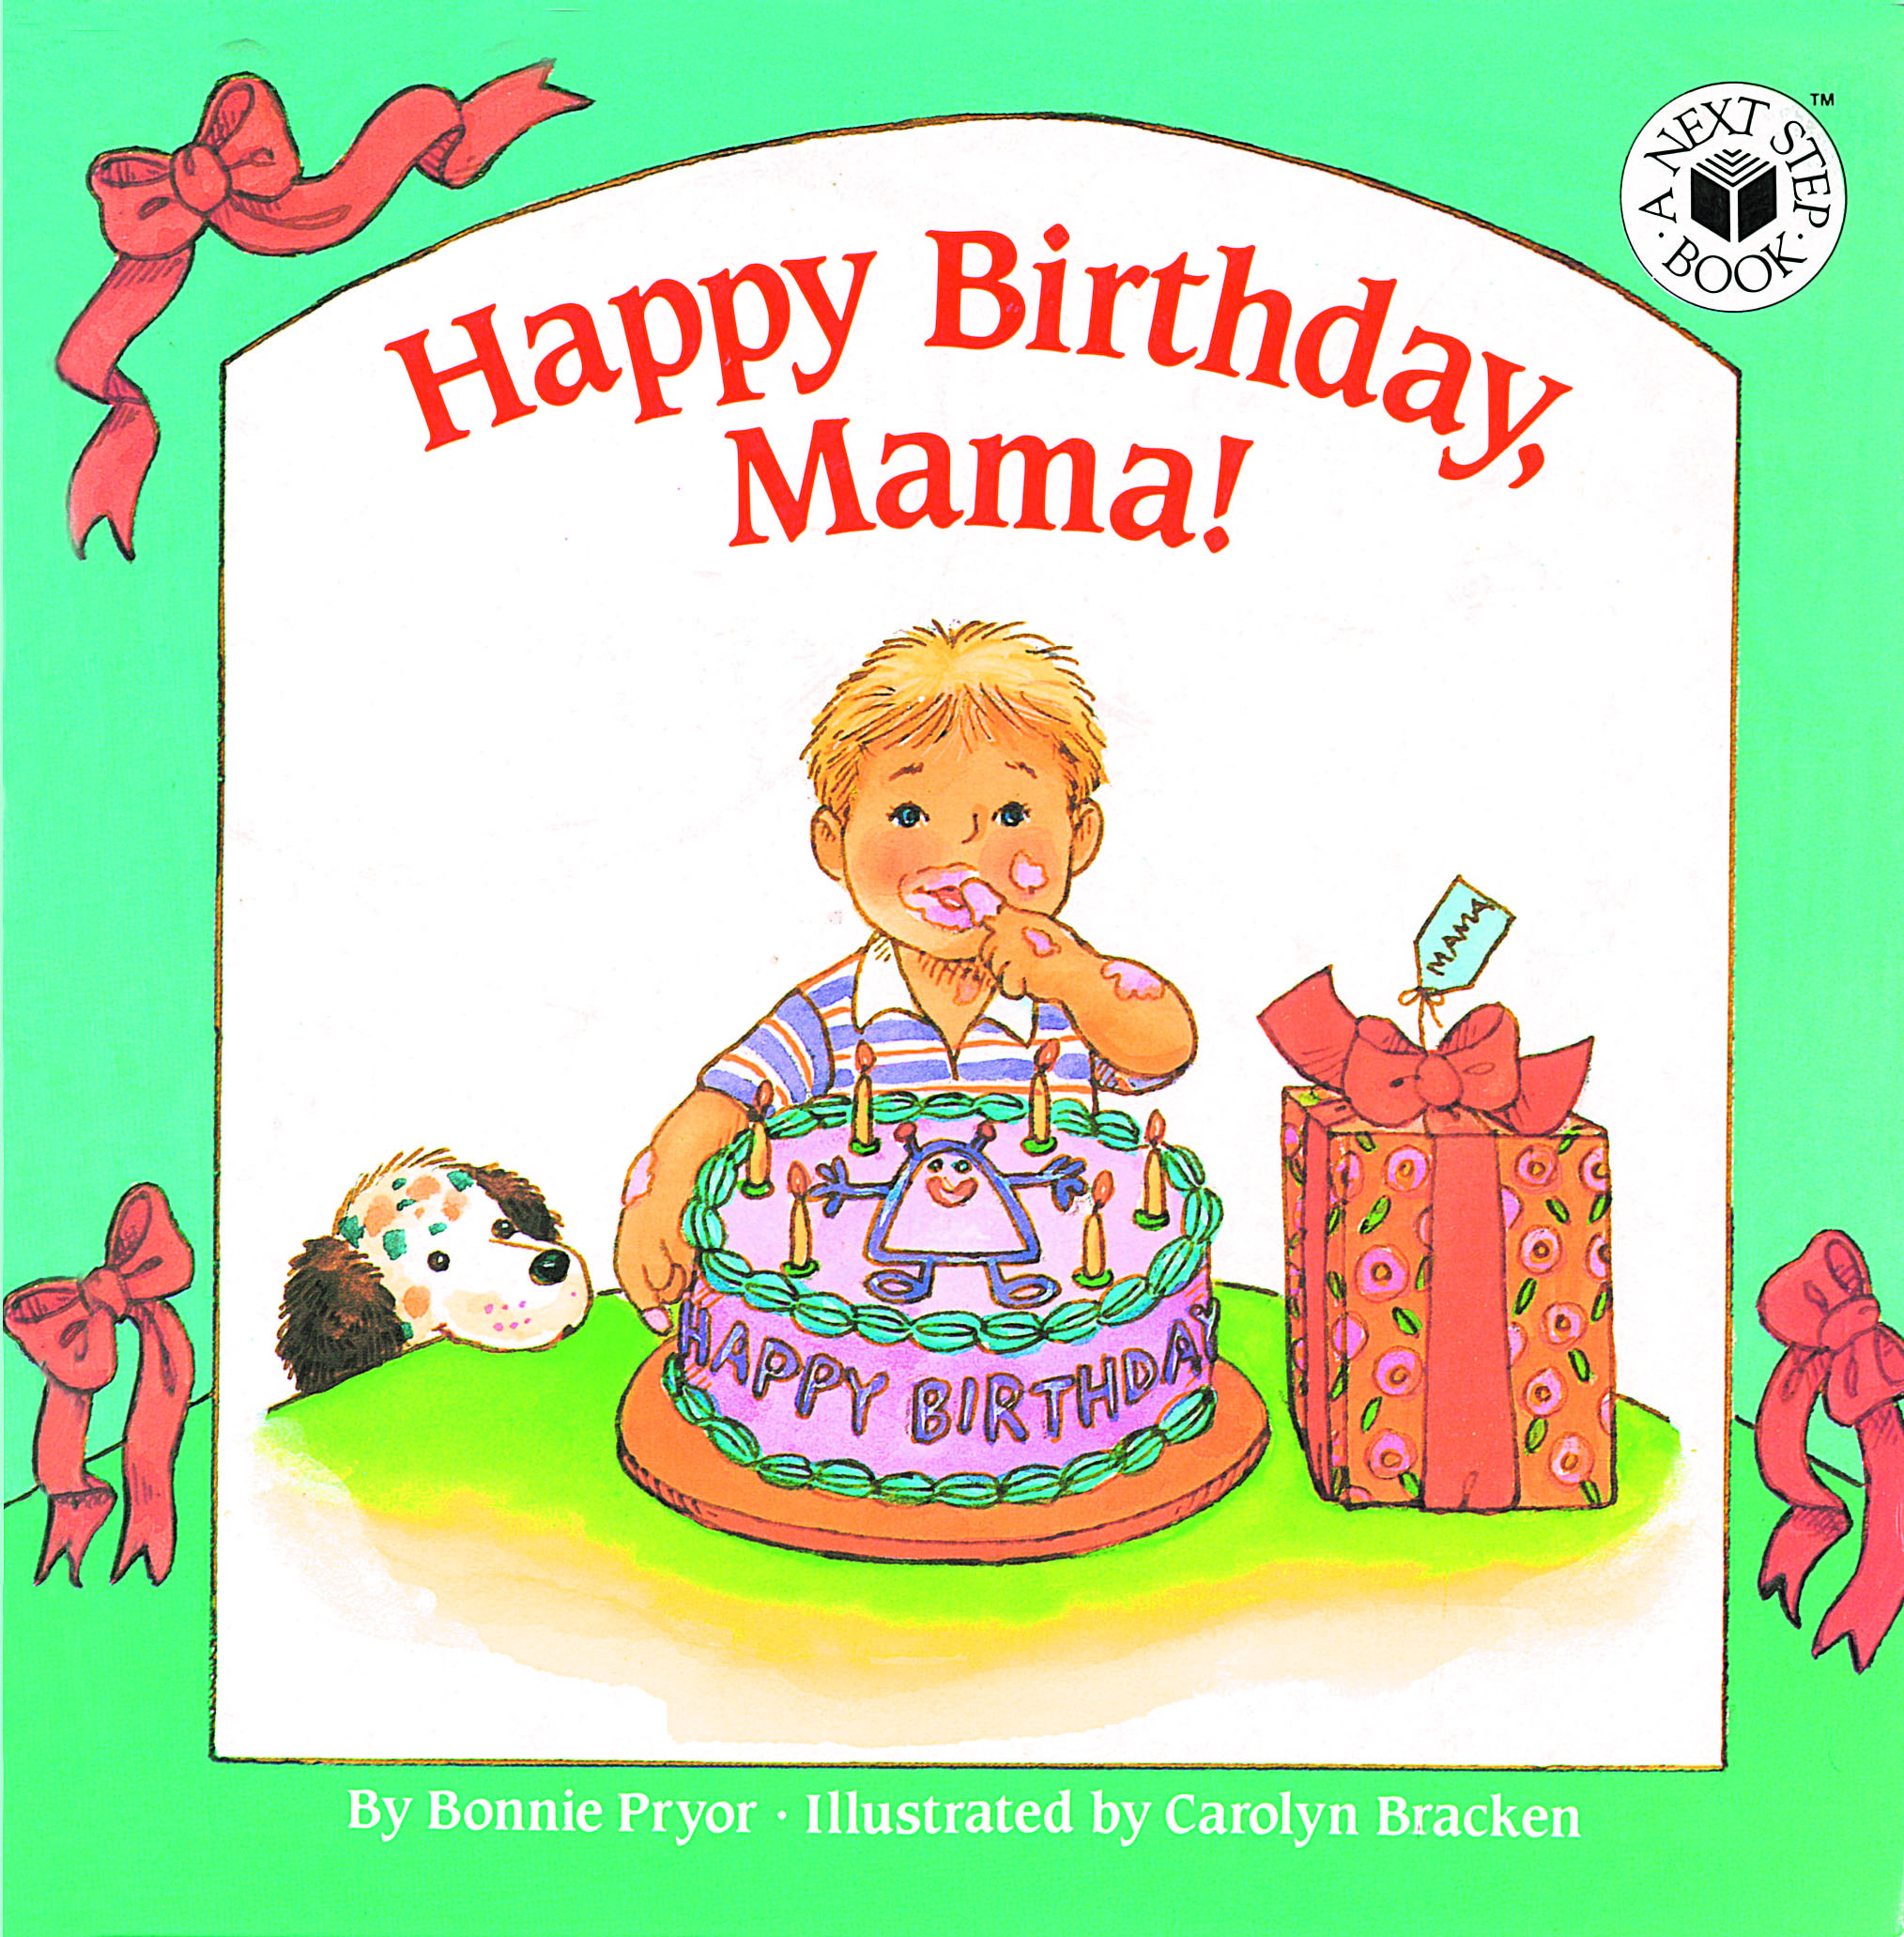 Happy birthday mama book by bonnie pryor official publisher book cover image jpg happy birthday mama publicscrutiny Image collections